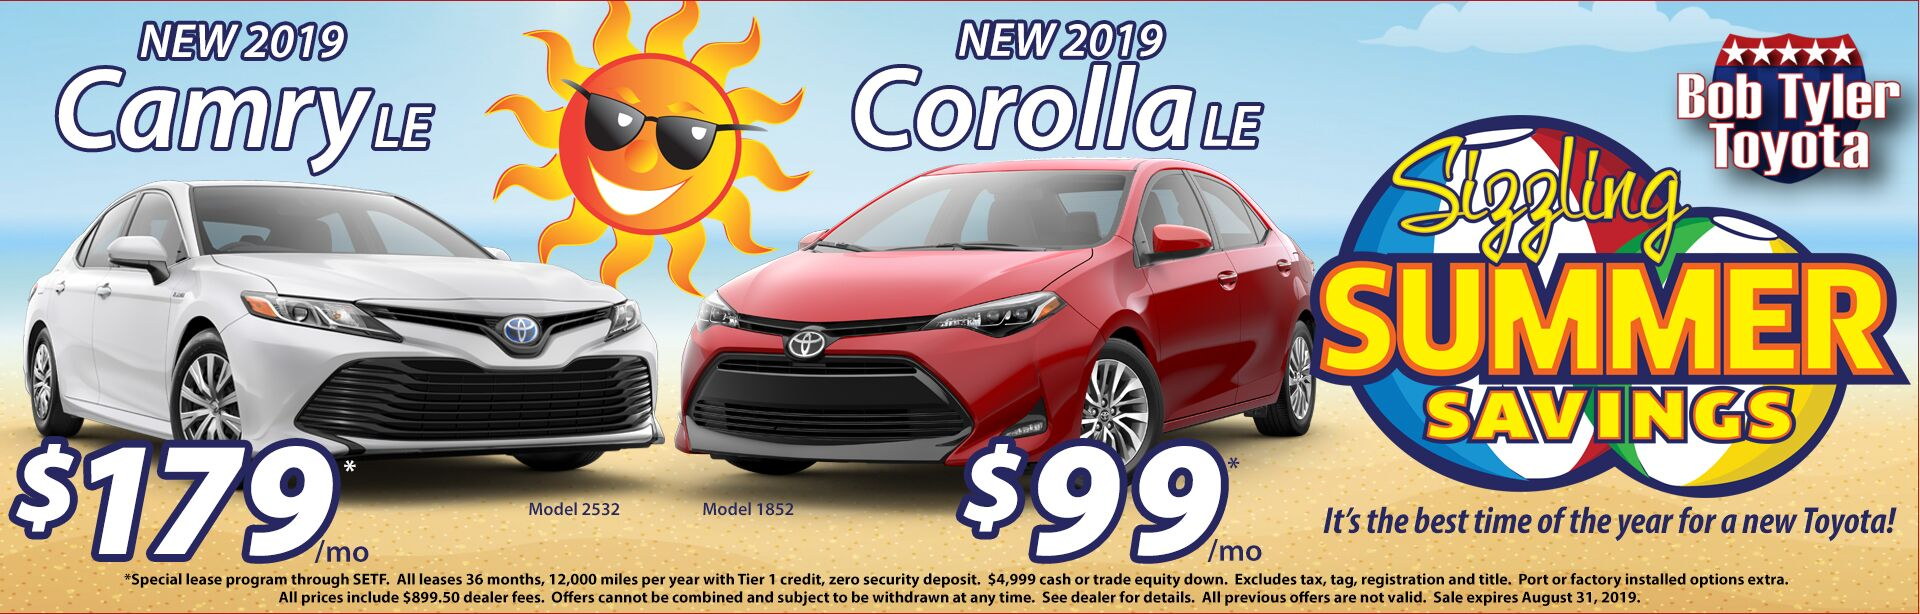 Camry and Corolla Summer Offer